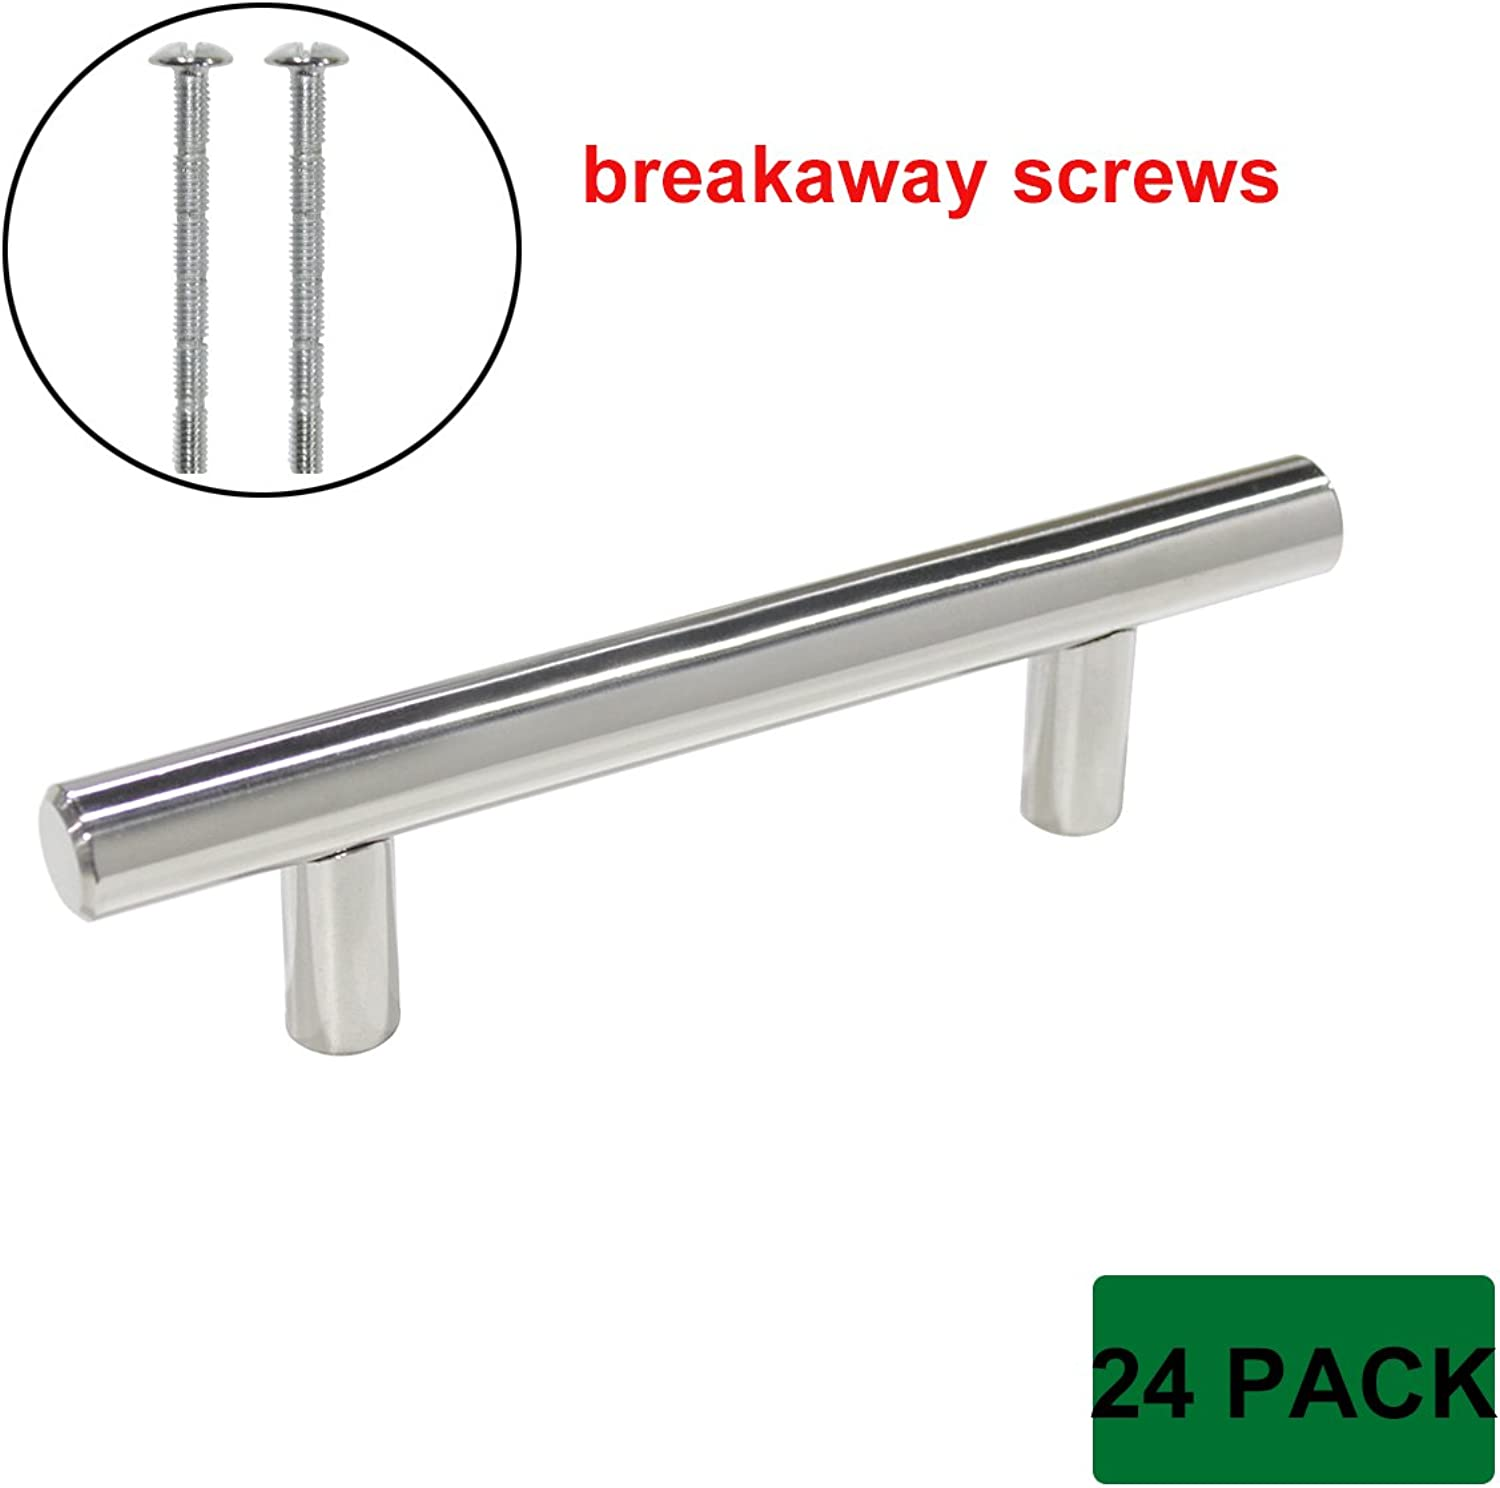 Probrico 24 Pack 3 inch Center to Center Polished Chrome Kitchen Cabinet Drawer Pull T Bar Dresser Handles, Breakaway Screws Included